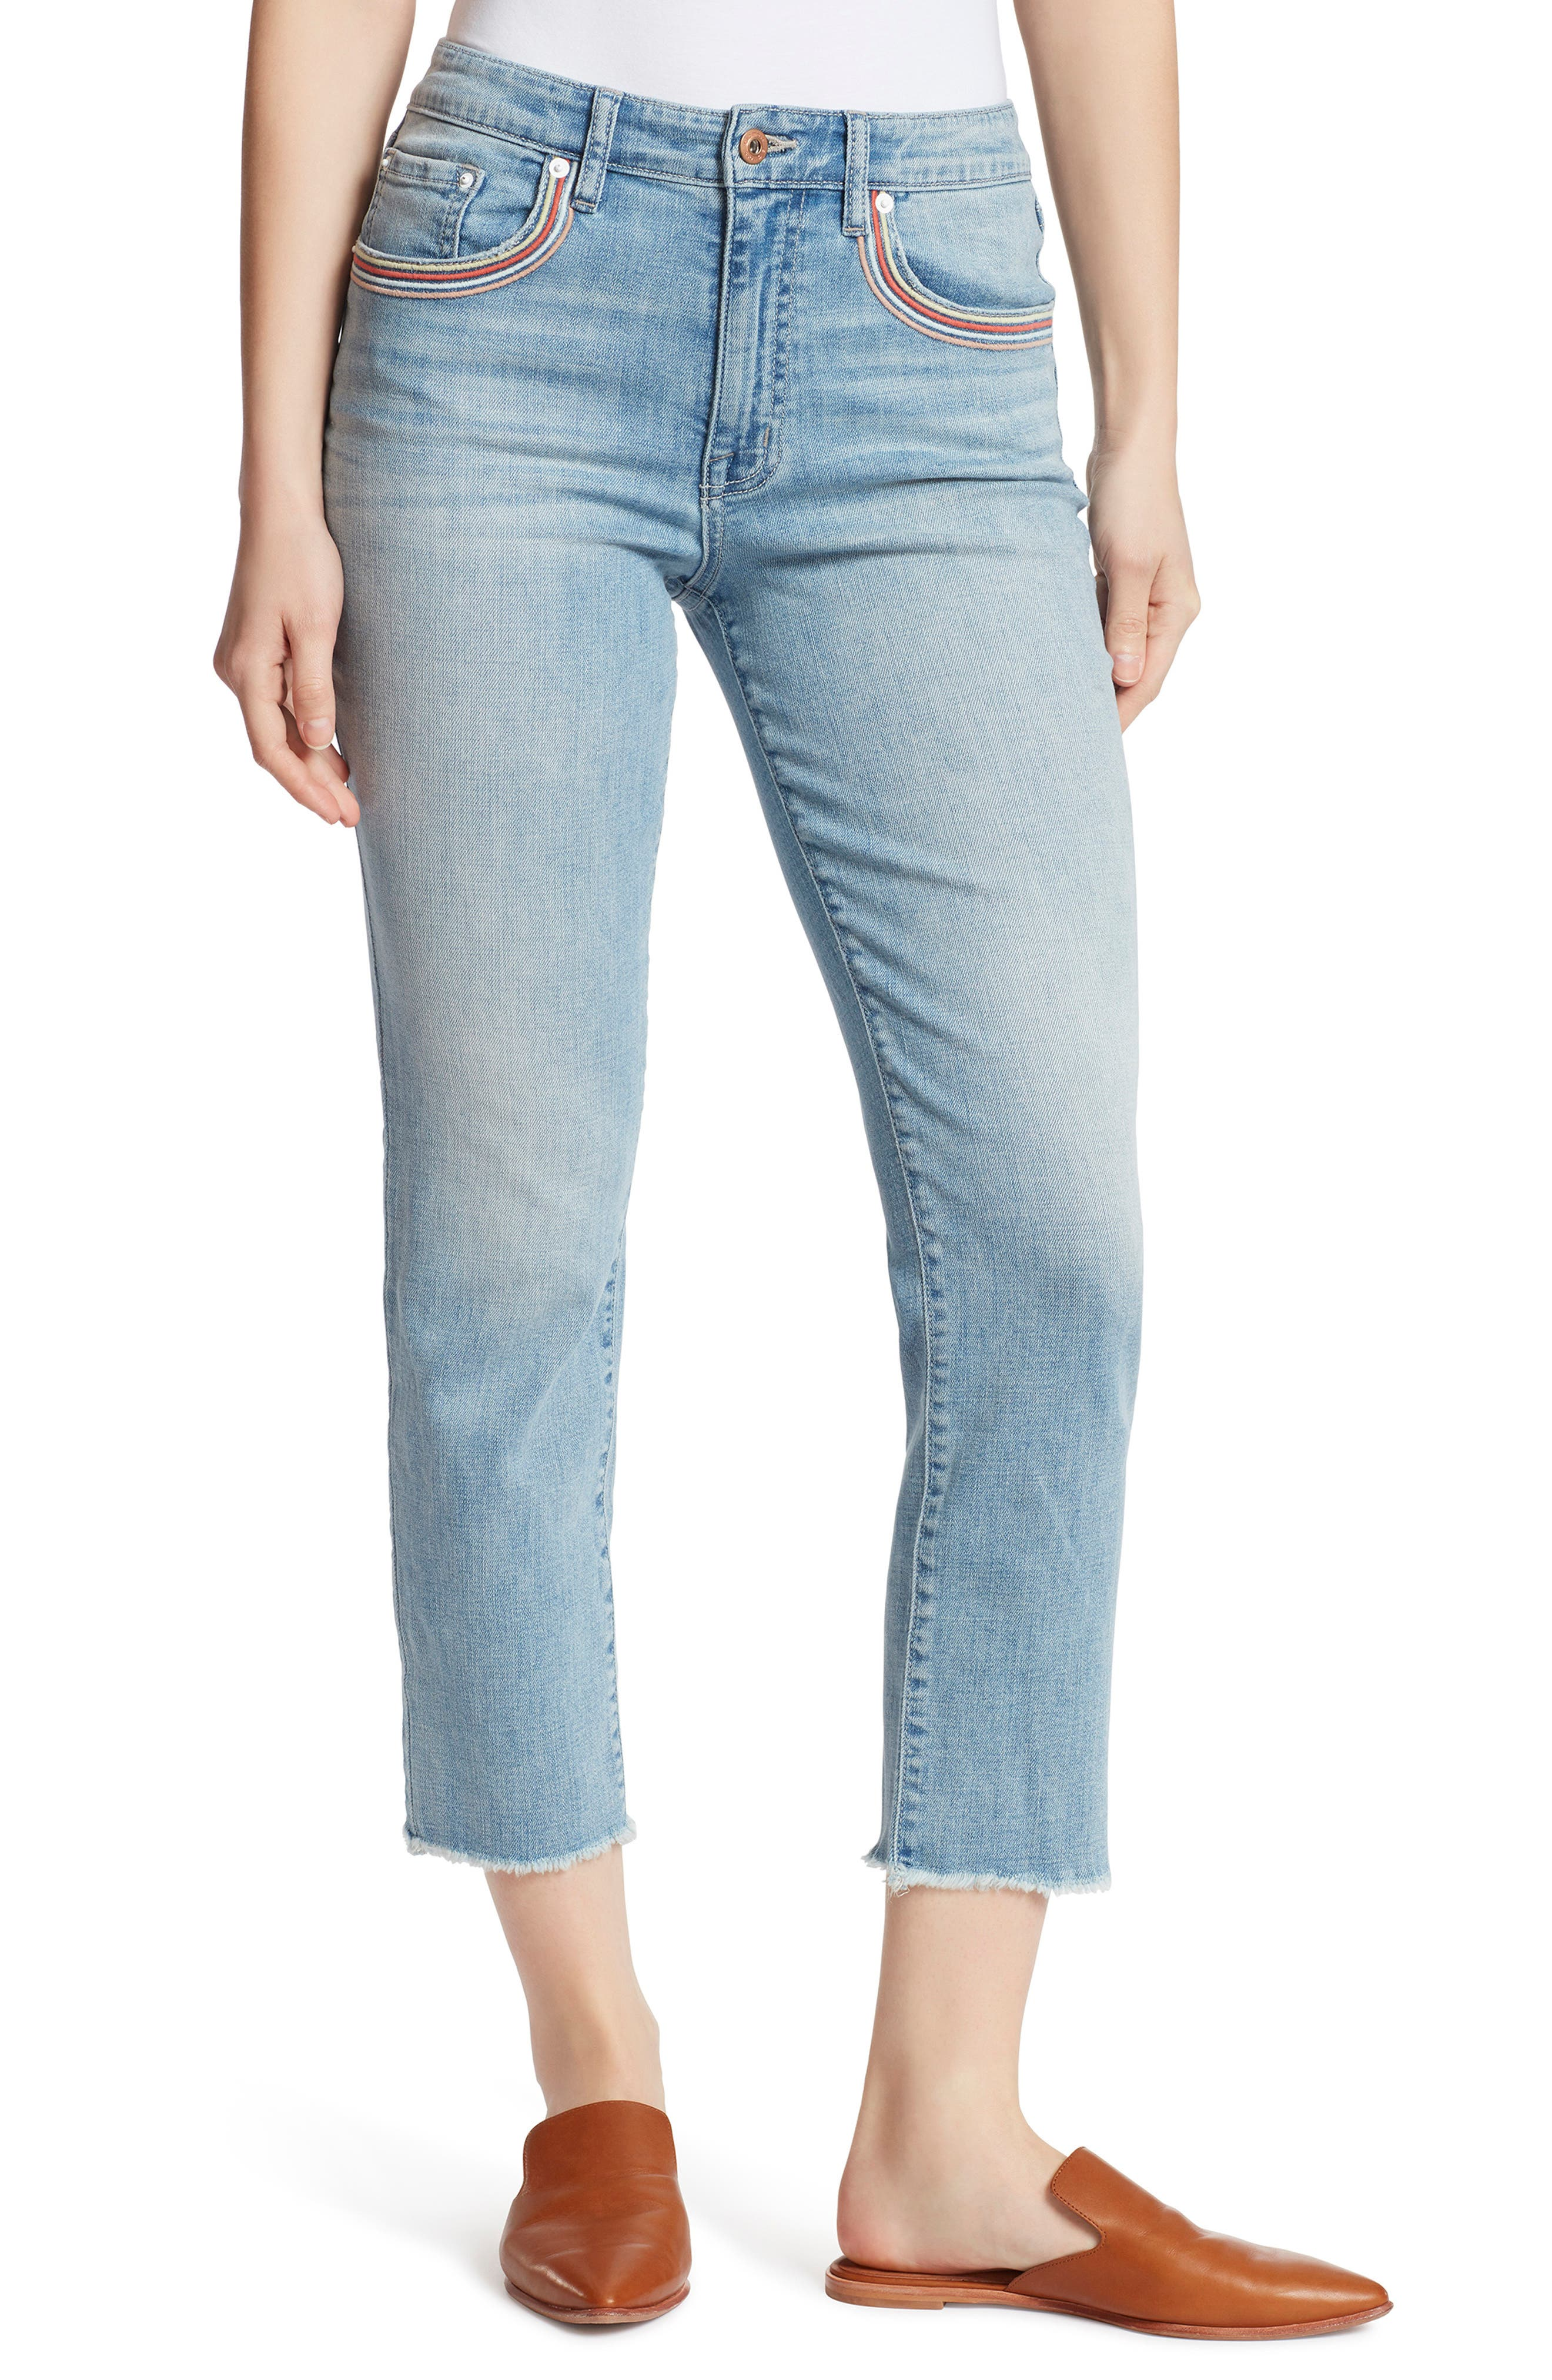 Ella Moss HIGH RISE SLIM STRAIGHT CROPPED JEANS